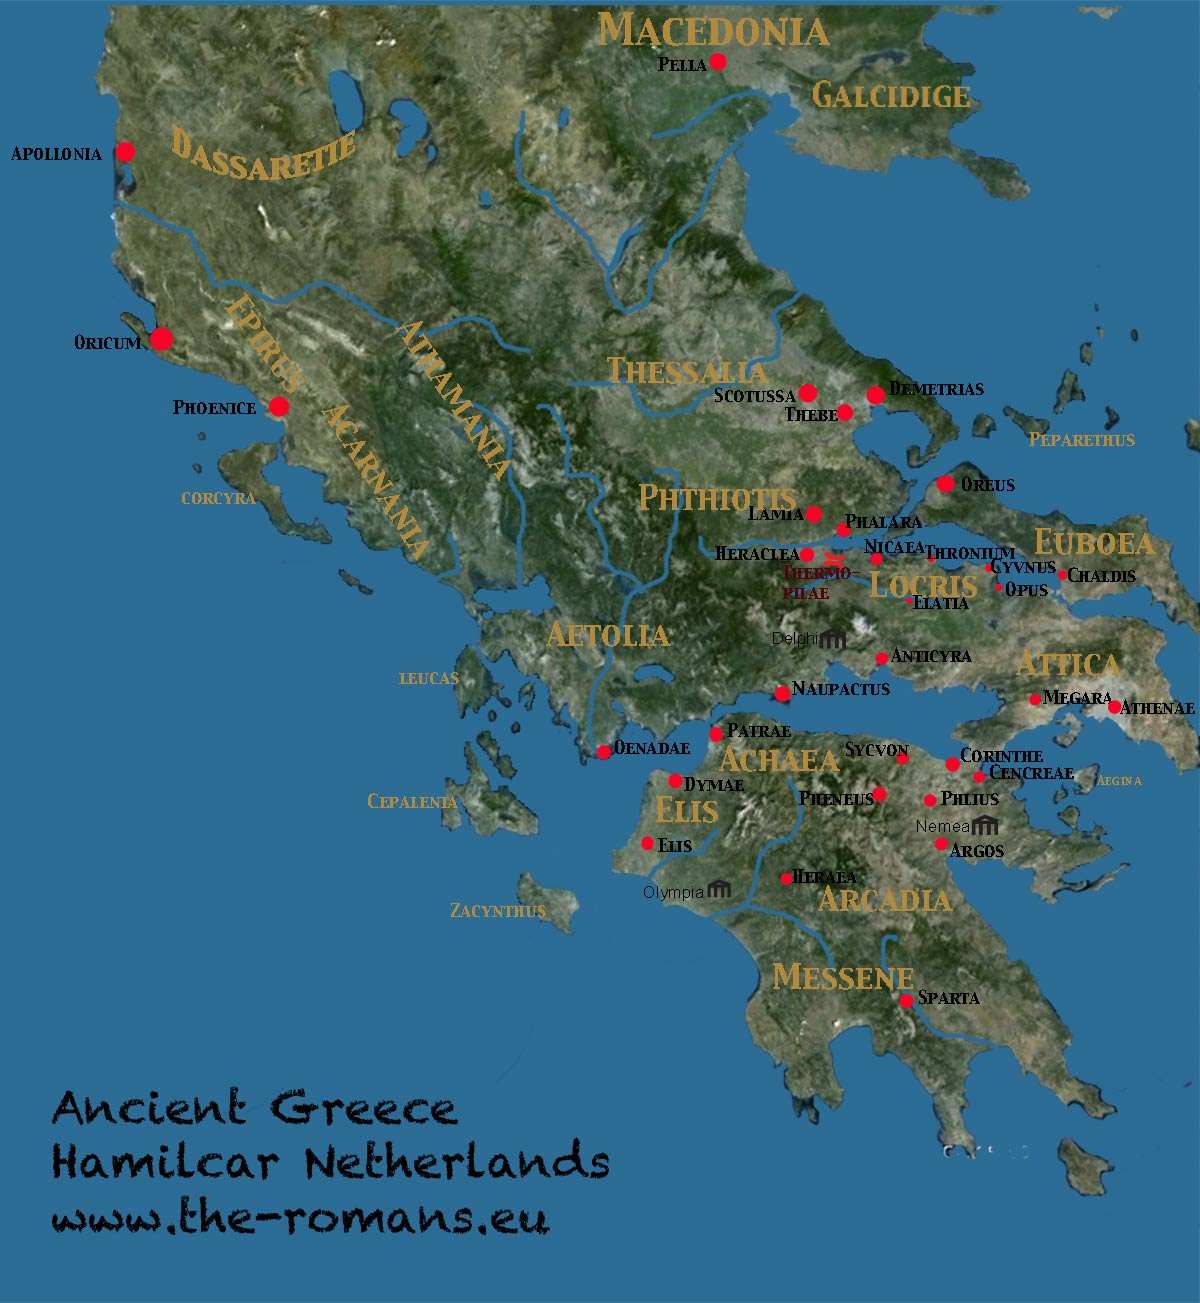 Large map of ancient Greece